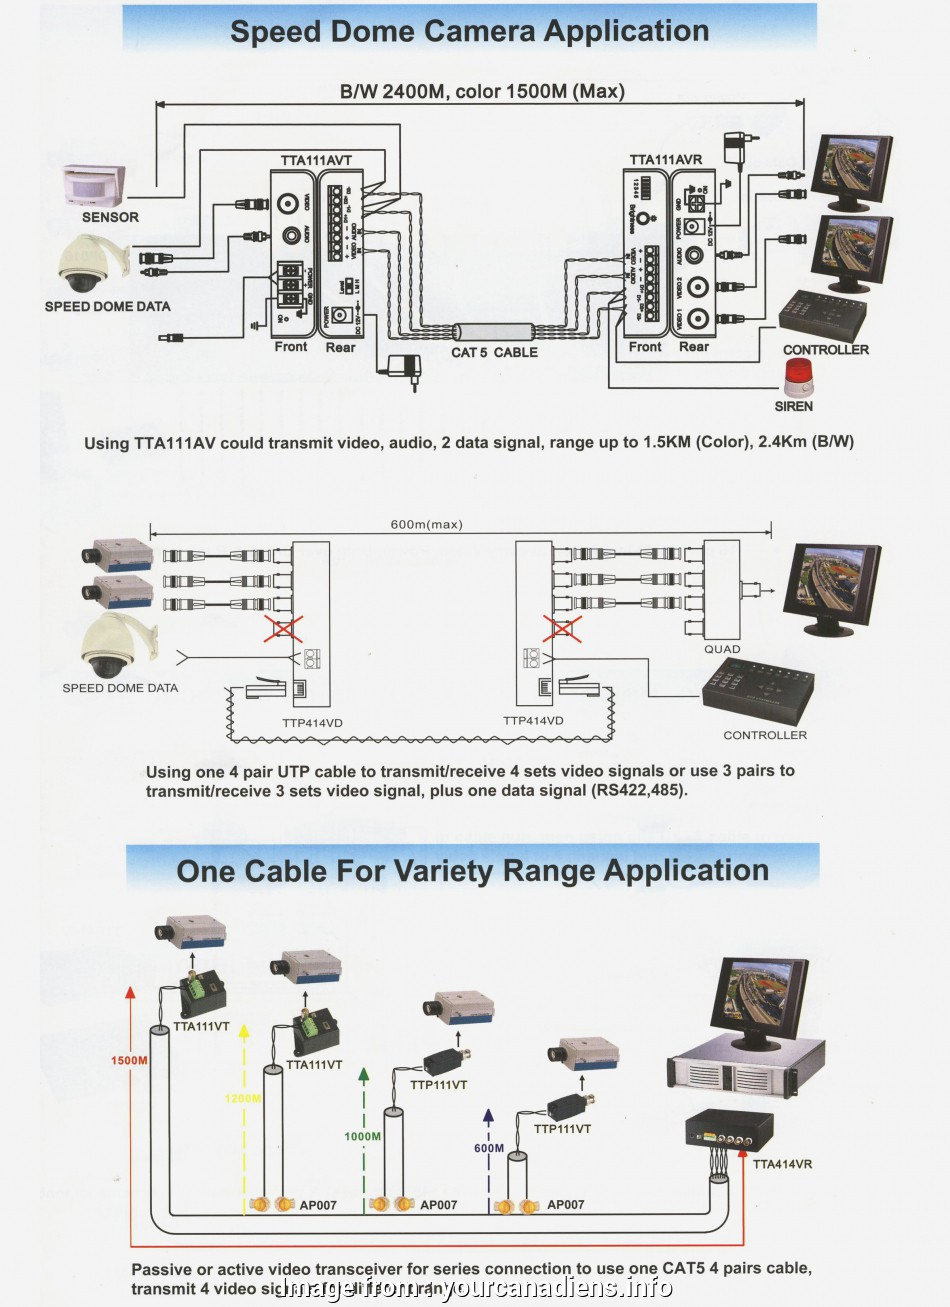 cat 5 wiring diagram for cctv cat5 cctv wiring diagram wiring diagram,  schematics, cctv